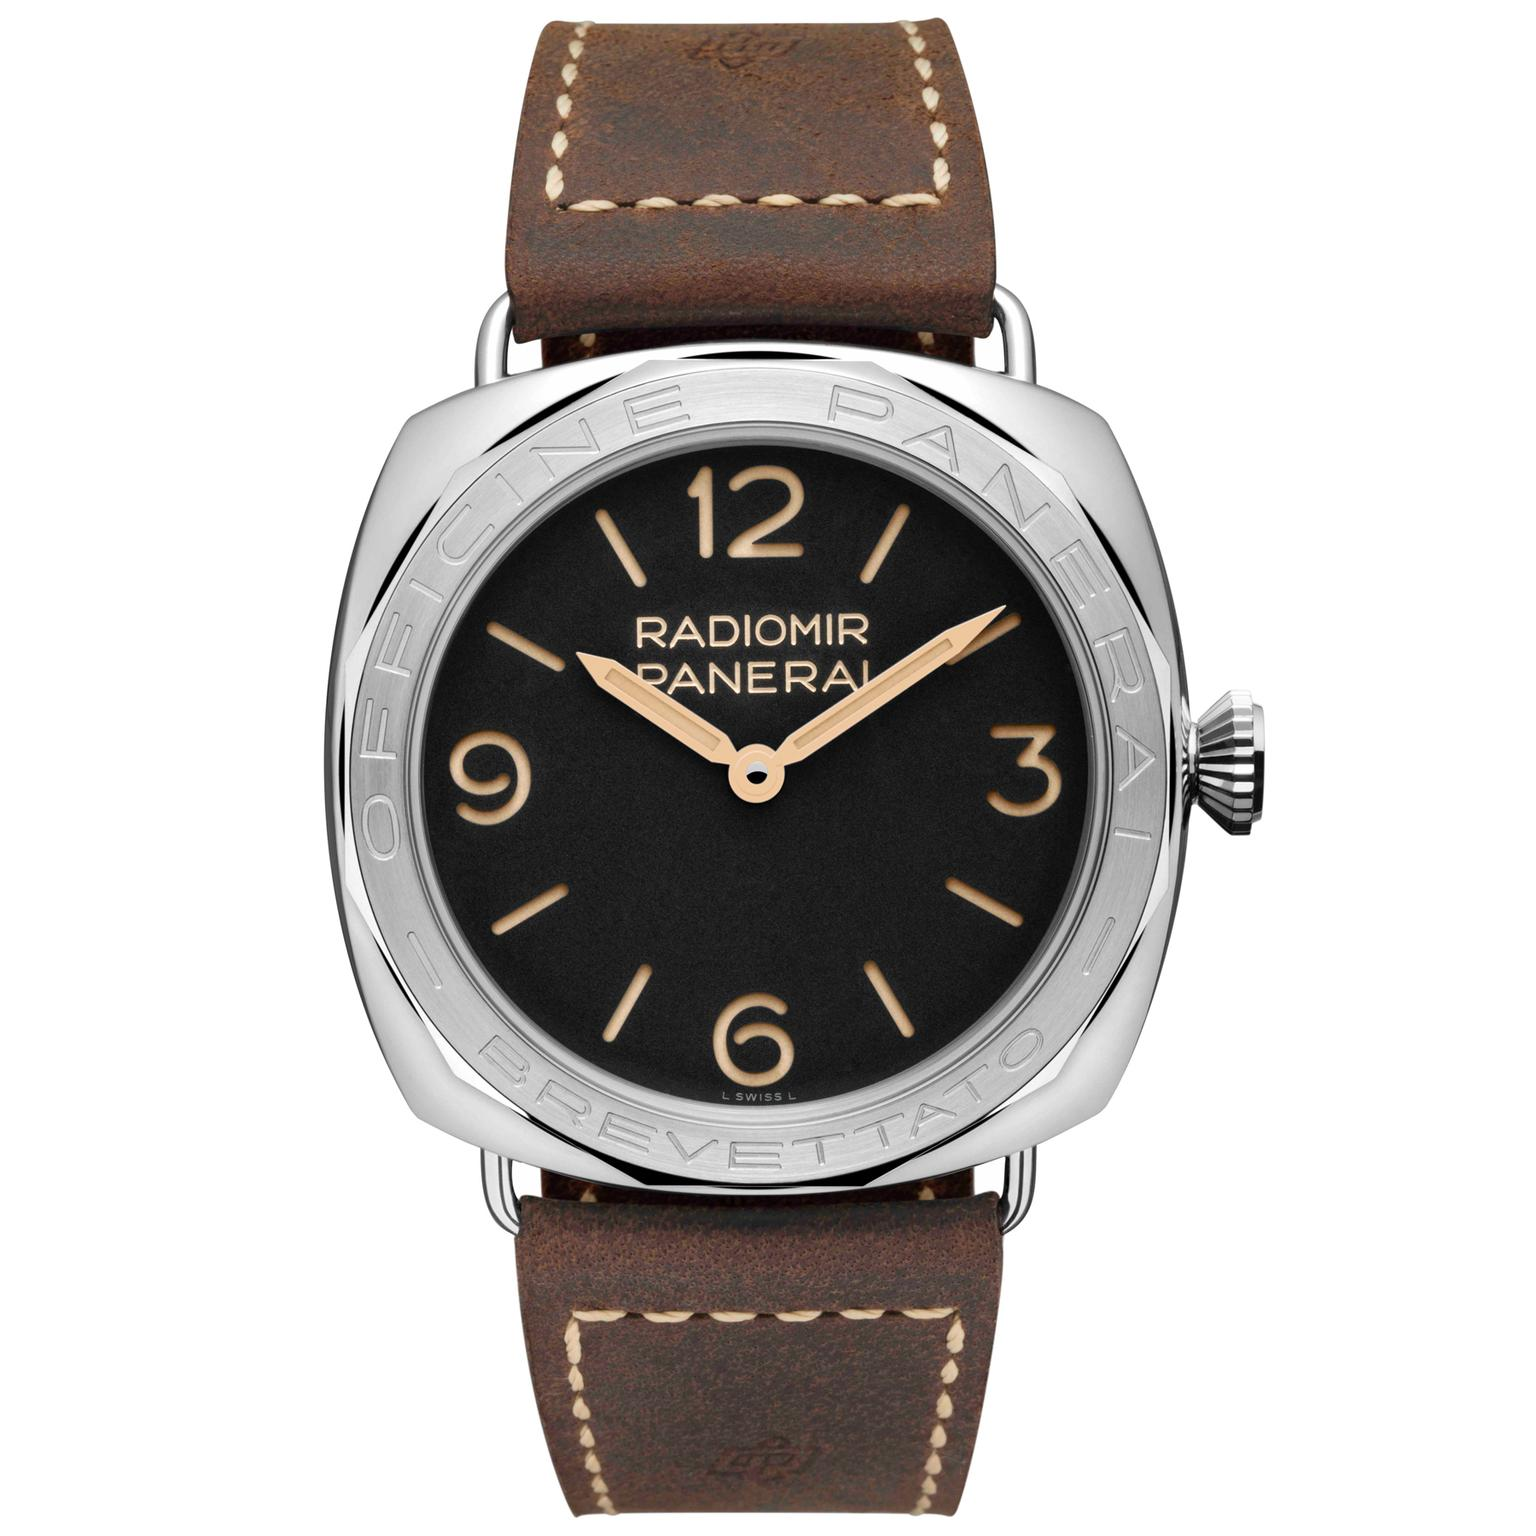 Panerai Radiomir 3 Days Acciaio black dial watch